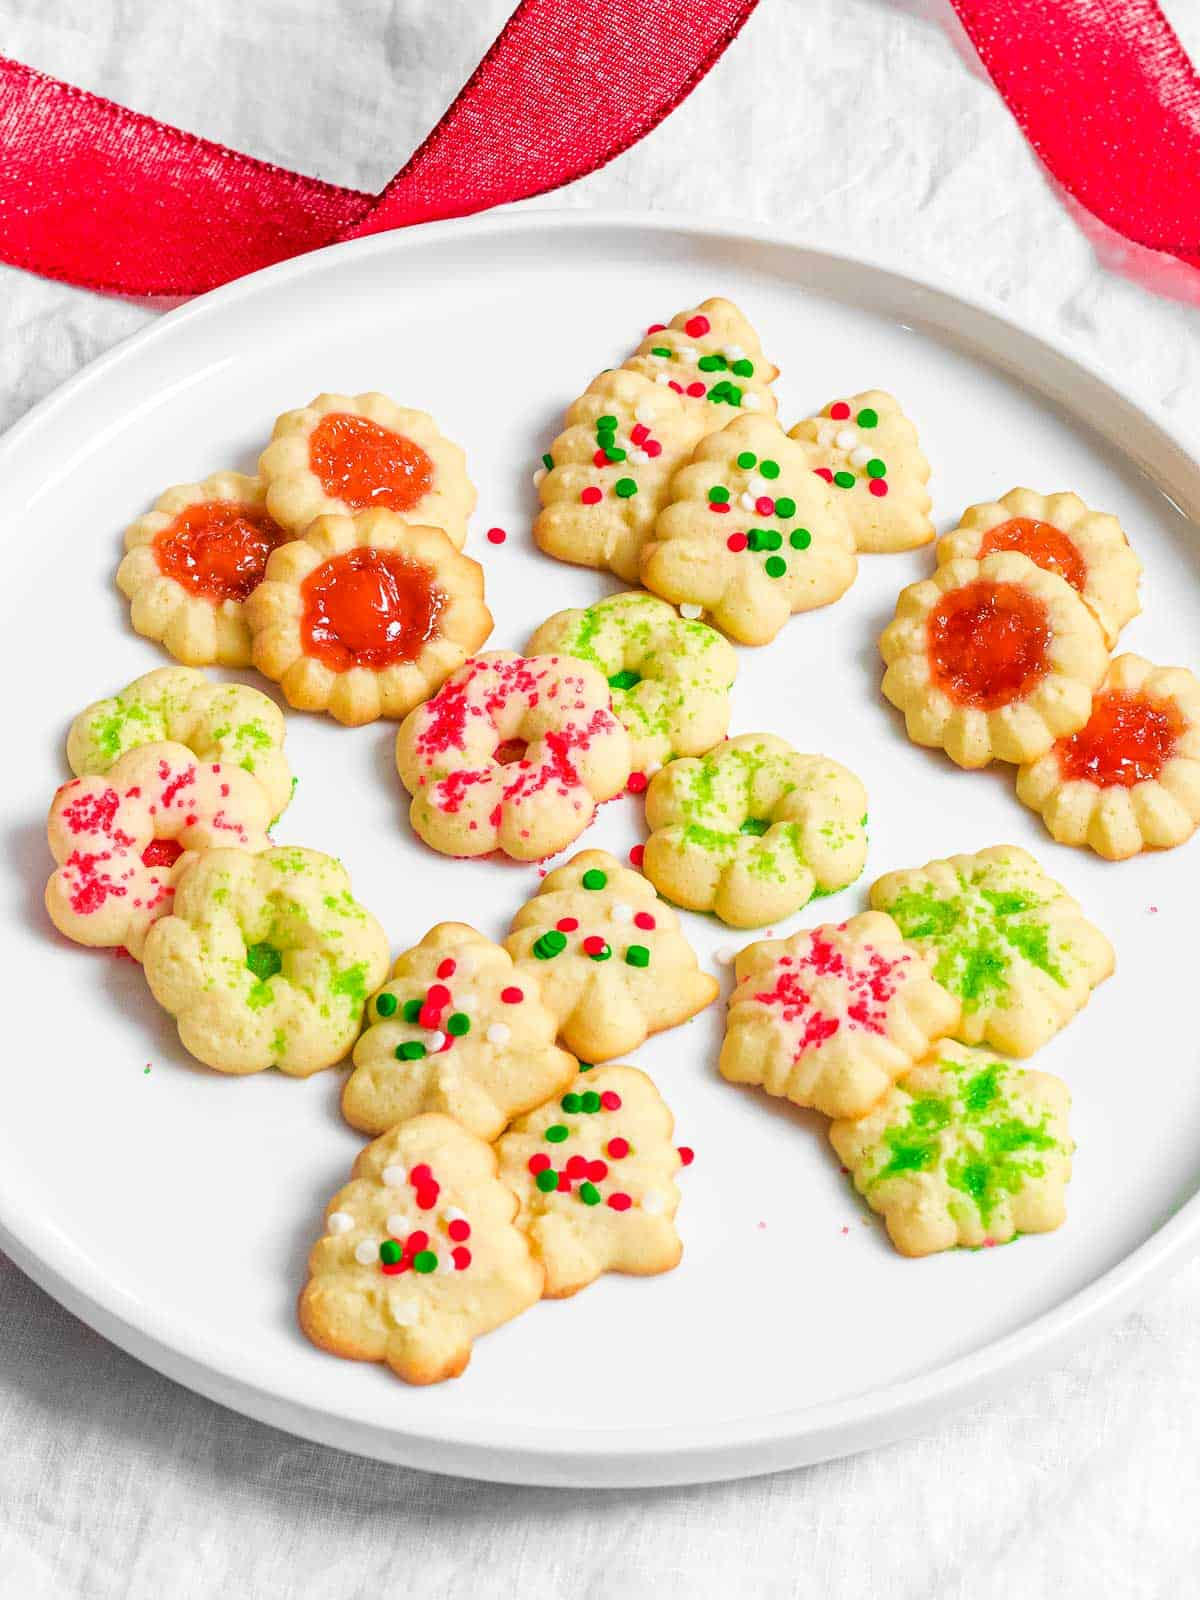 Christmas spritz cookies in the shapes of Christmas trees, snowflakes, and wreaths decorated with red and green sprinkles on a plate.